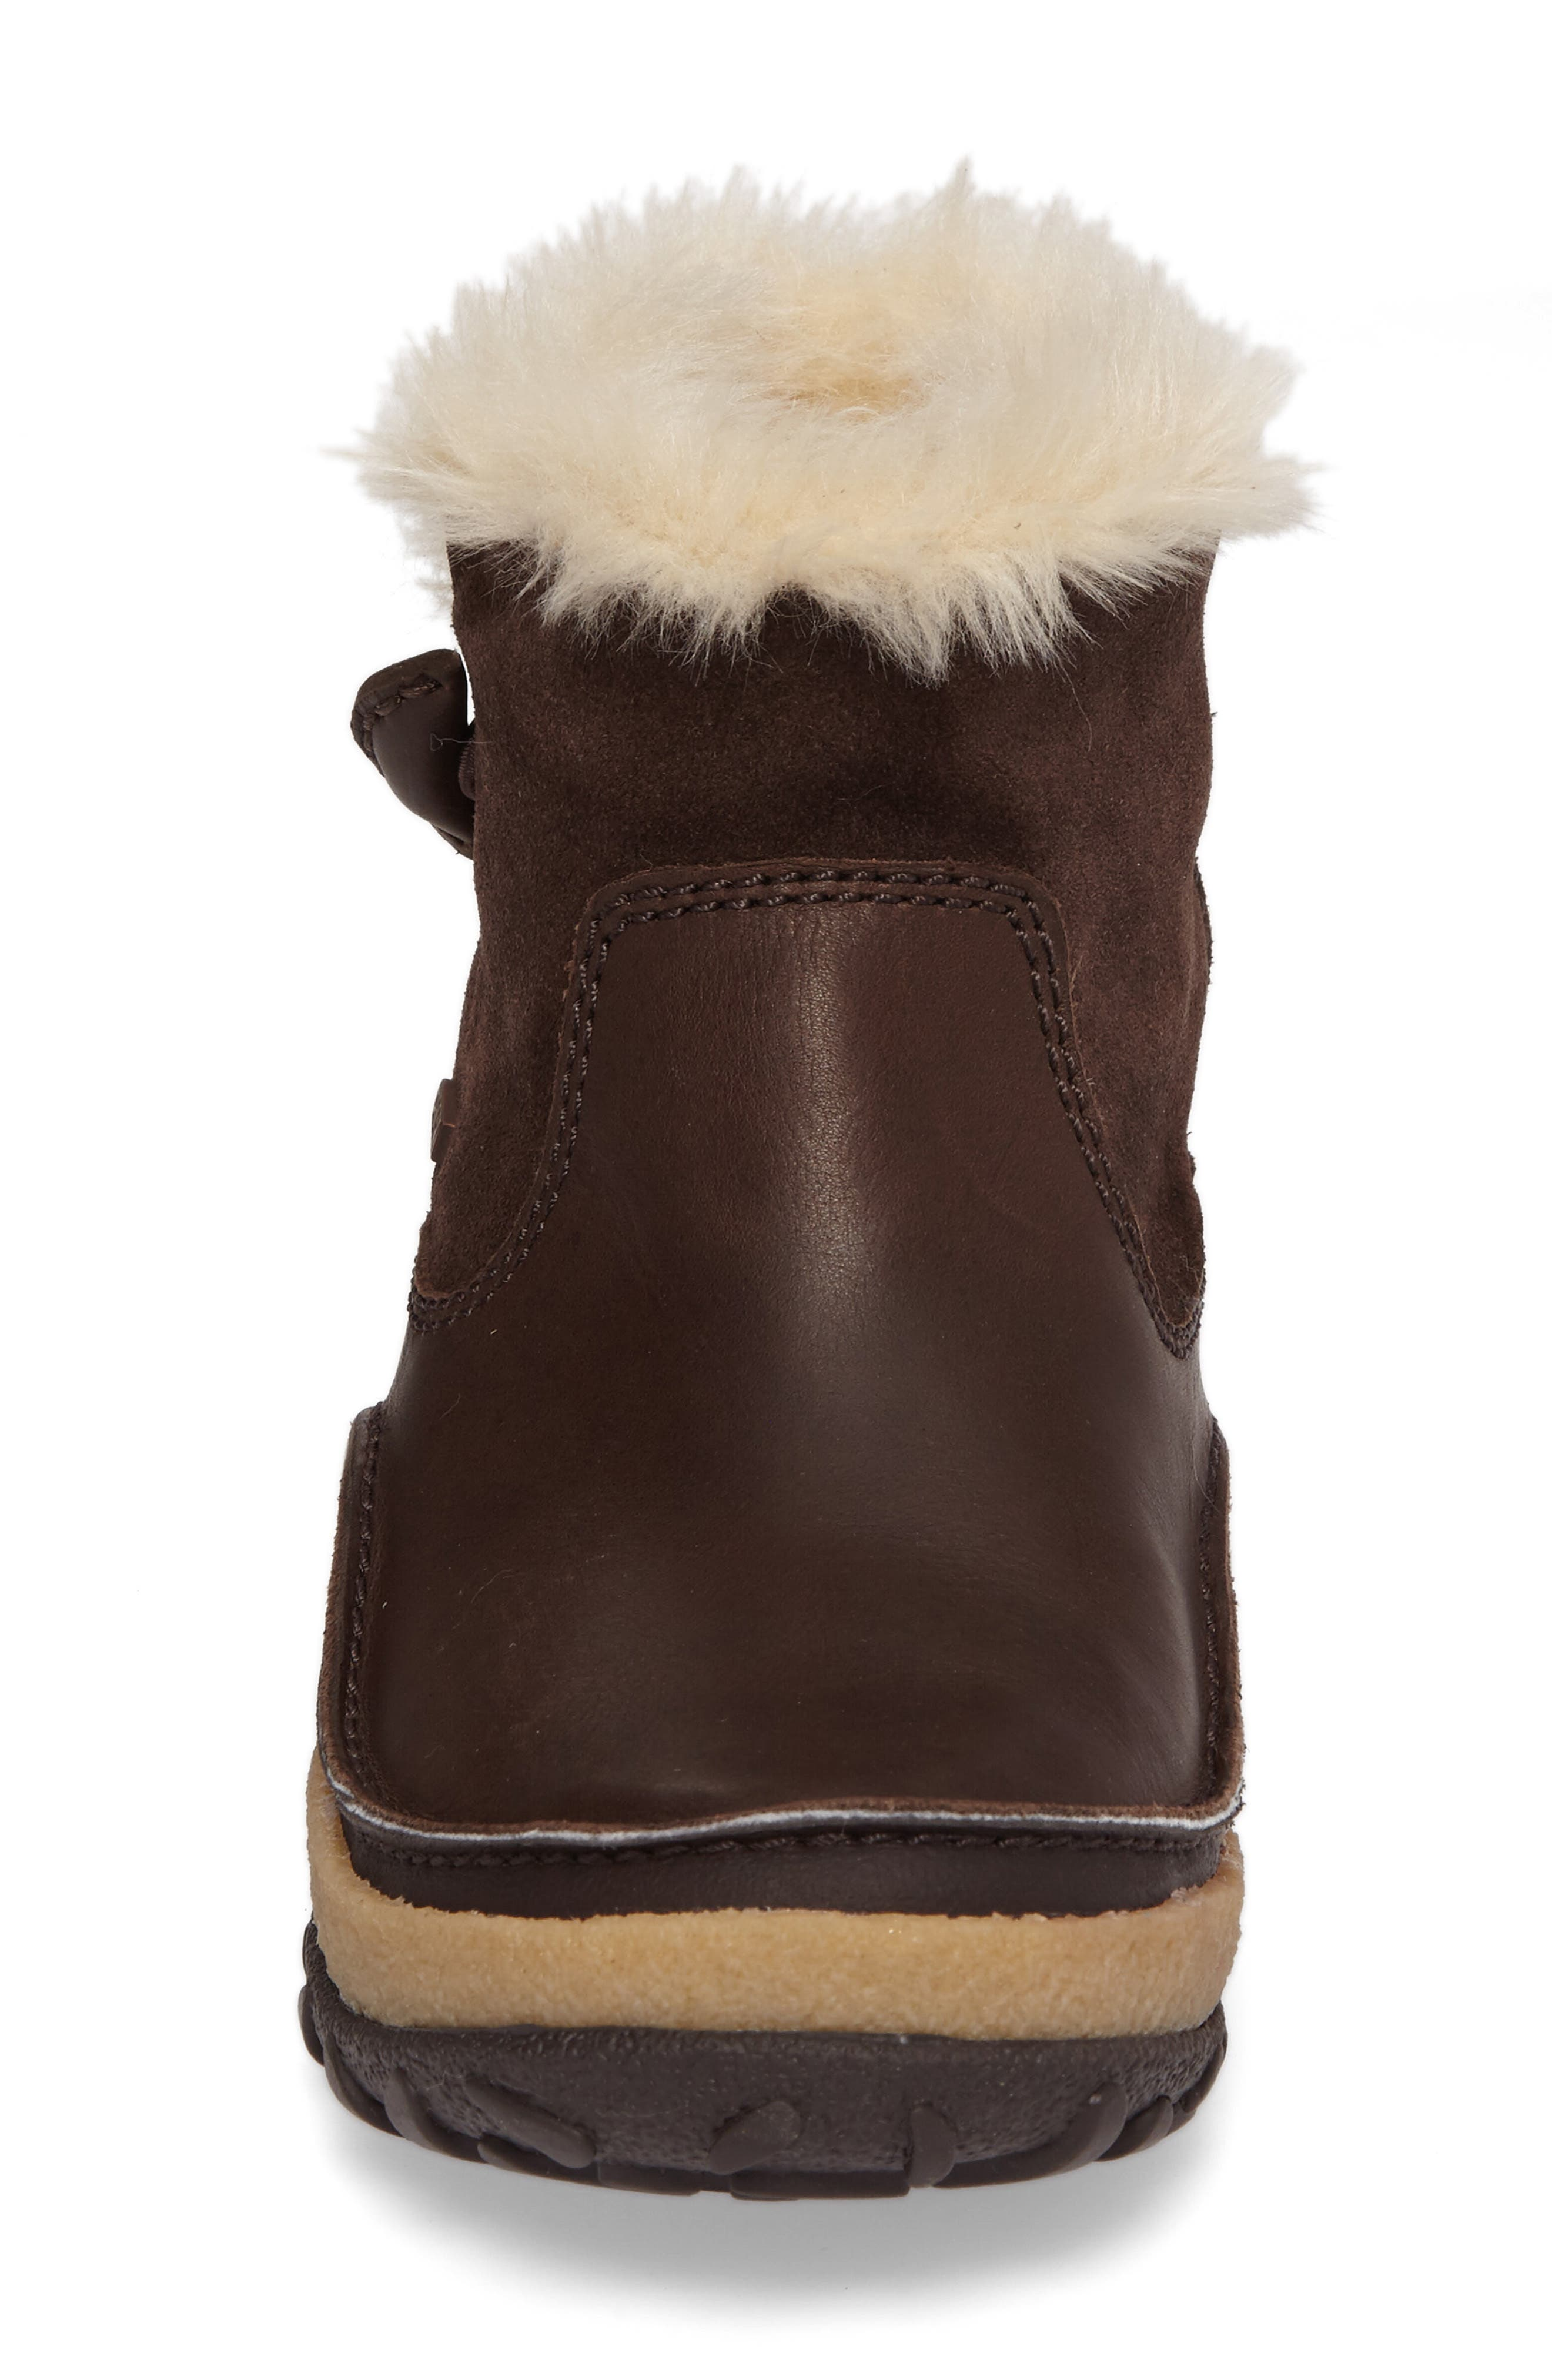 Tremblant Pull-On Polar Waterproof Bootie,                             Alternate thumbnail 4, color,                             Espresso Leather